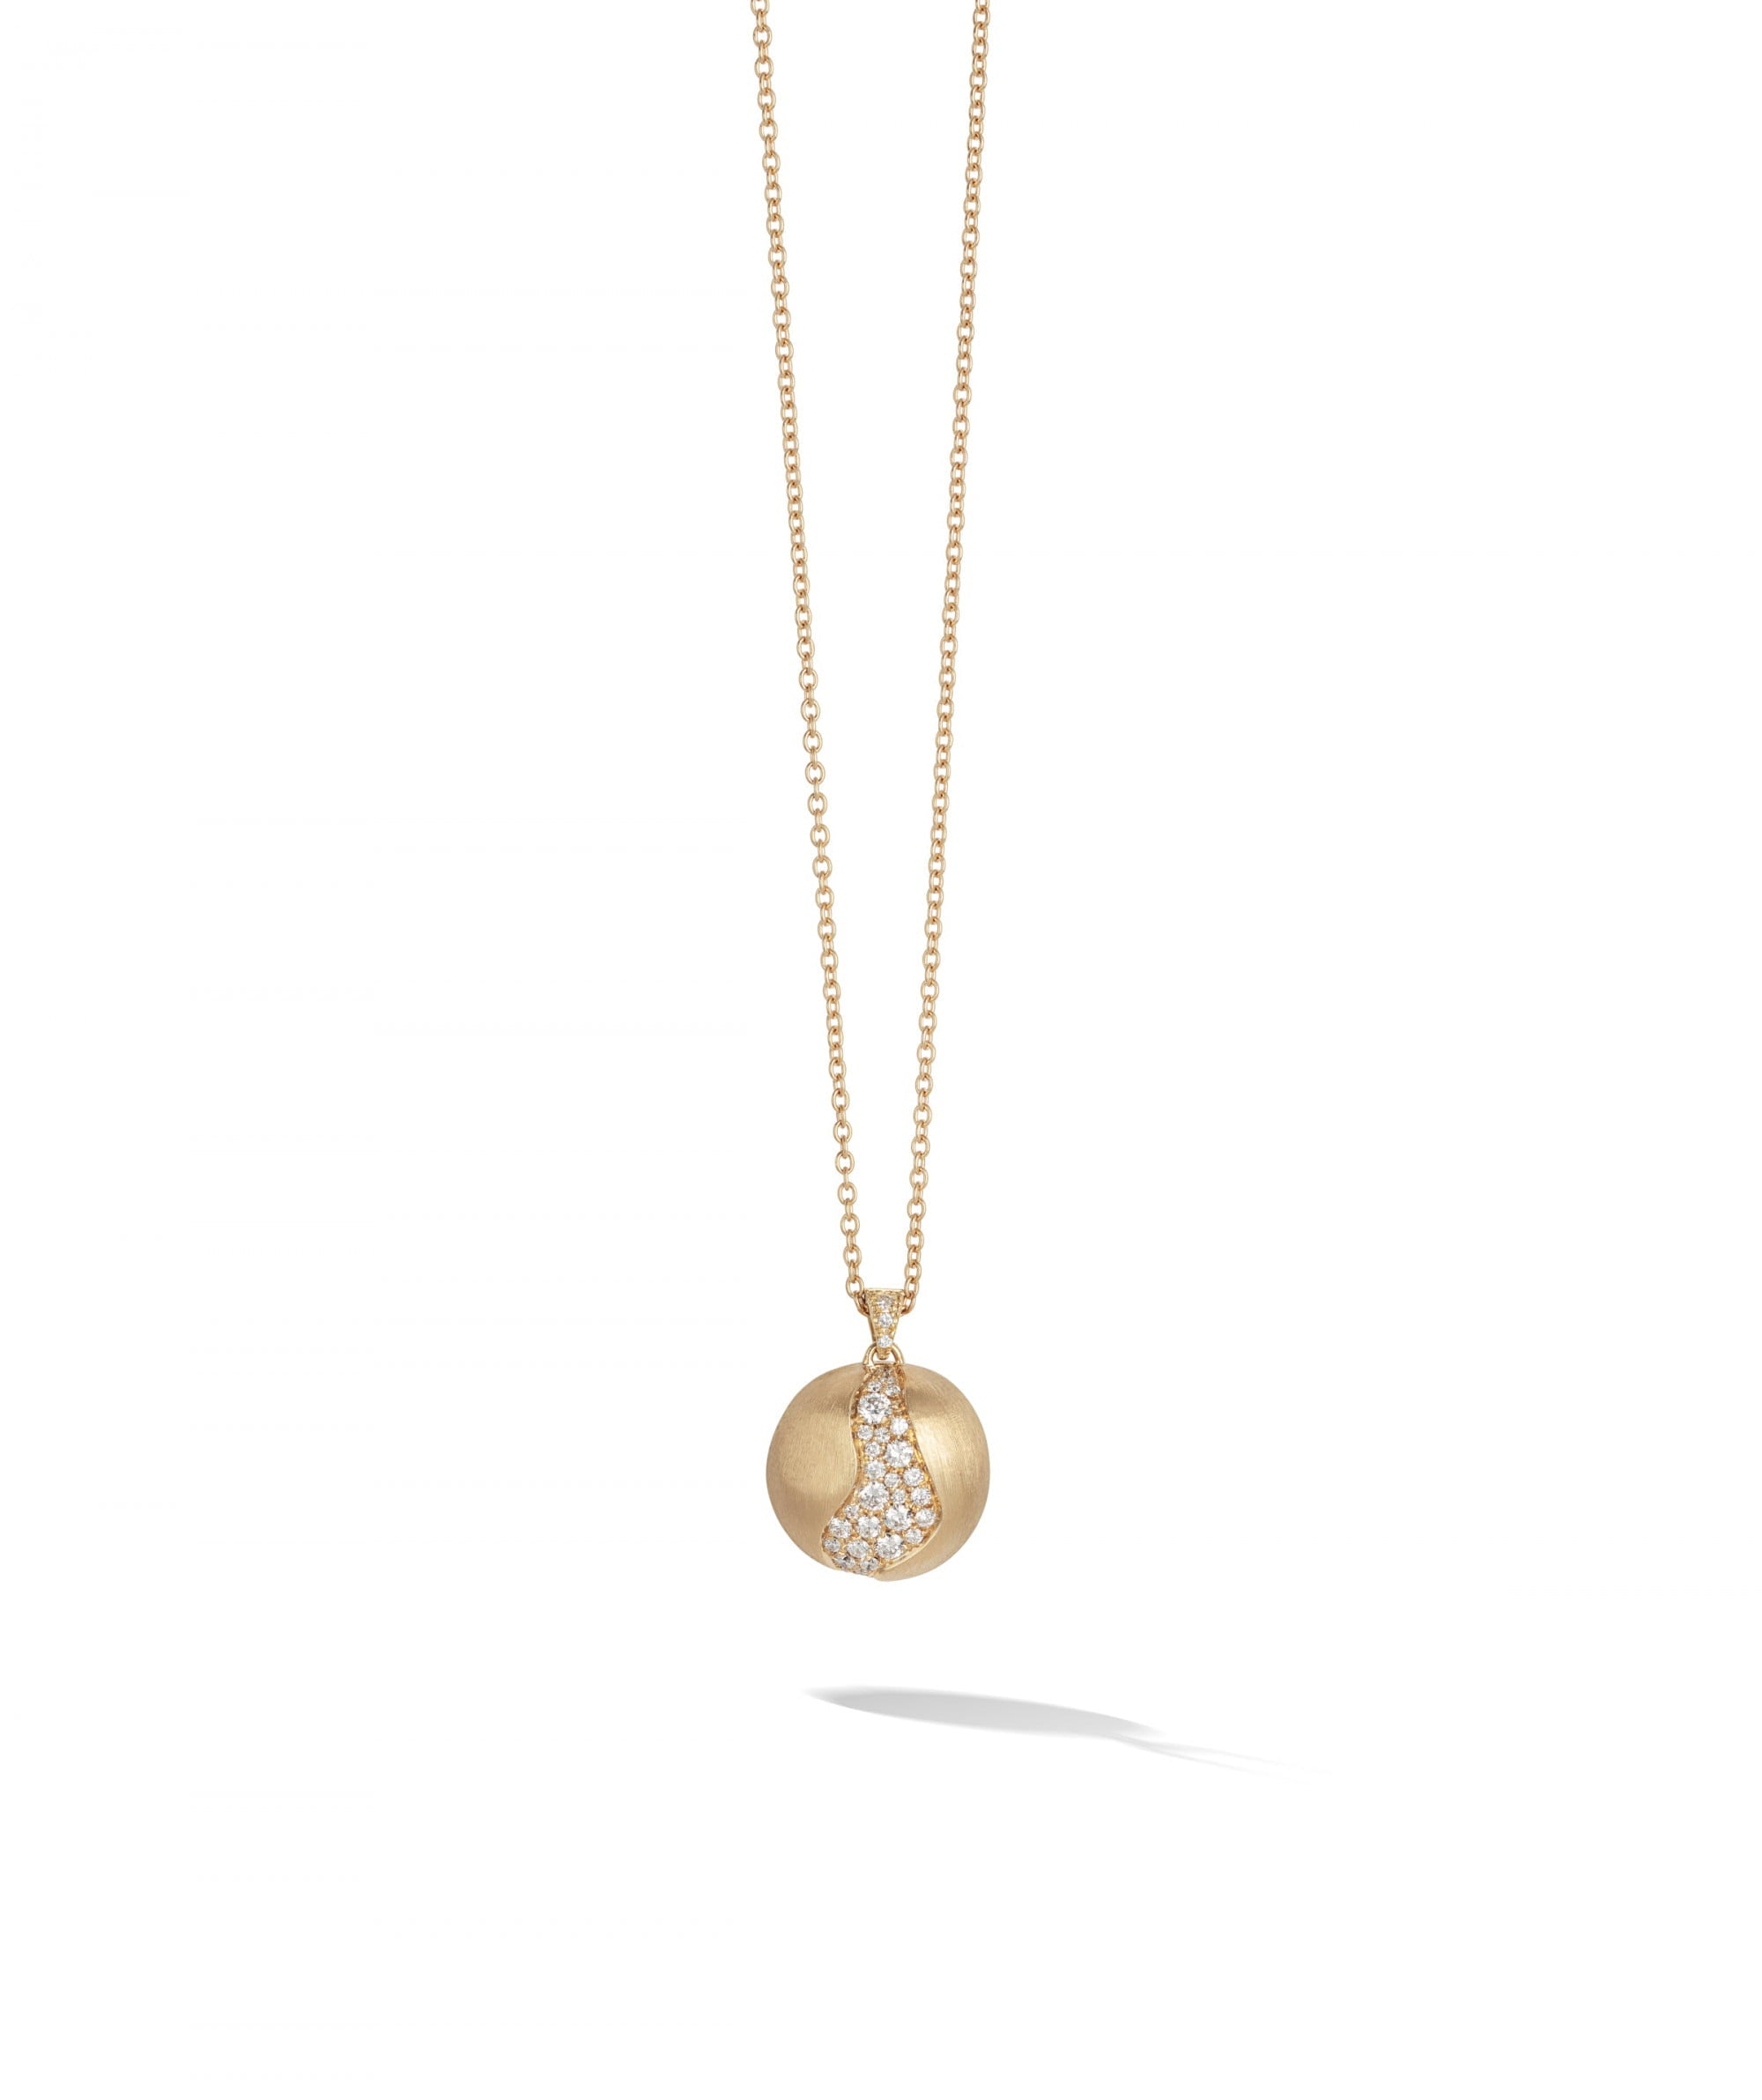 Africa Constellation Necklace in 18k Yellow Gold with Diamonds Long - Orsini Jewellers NZ